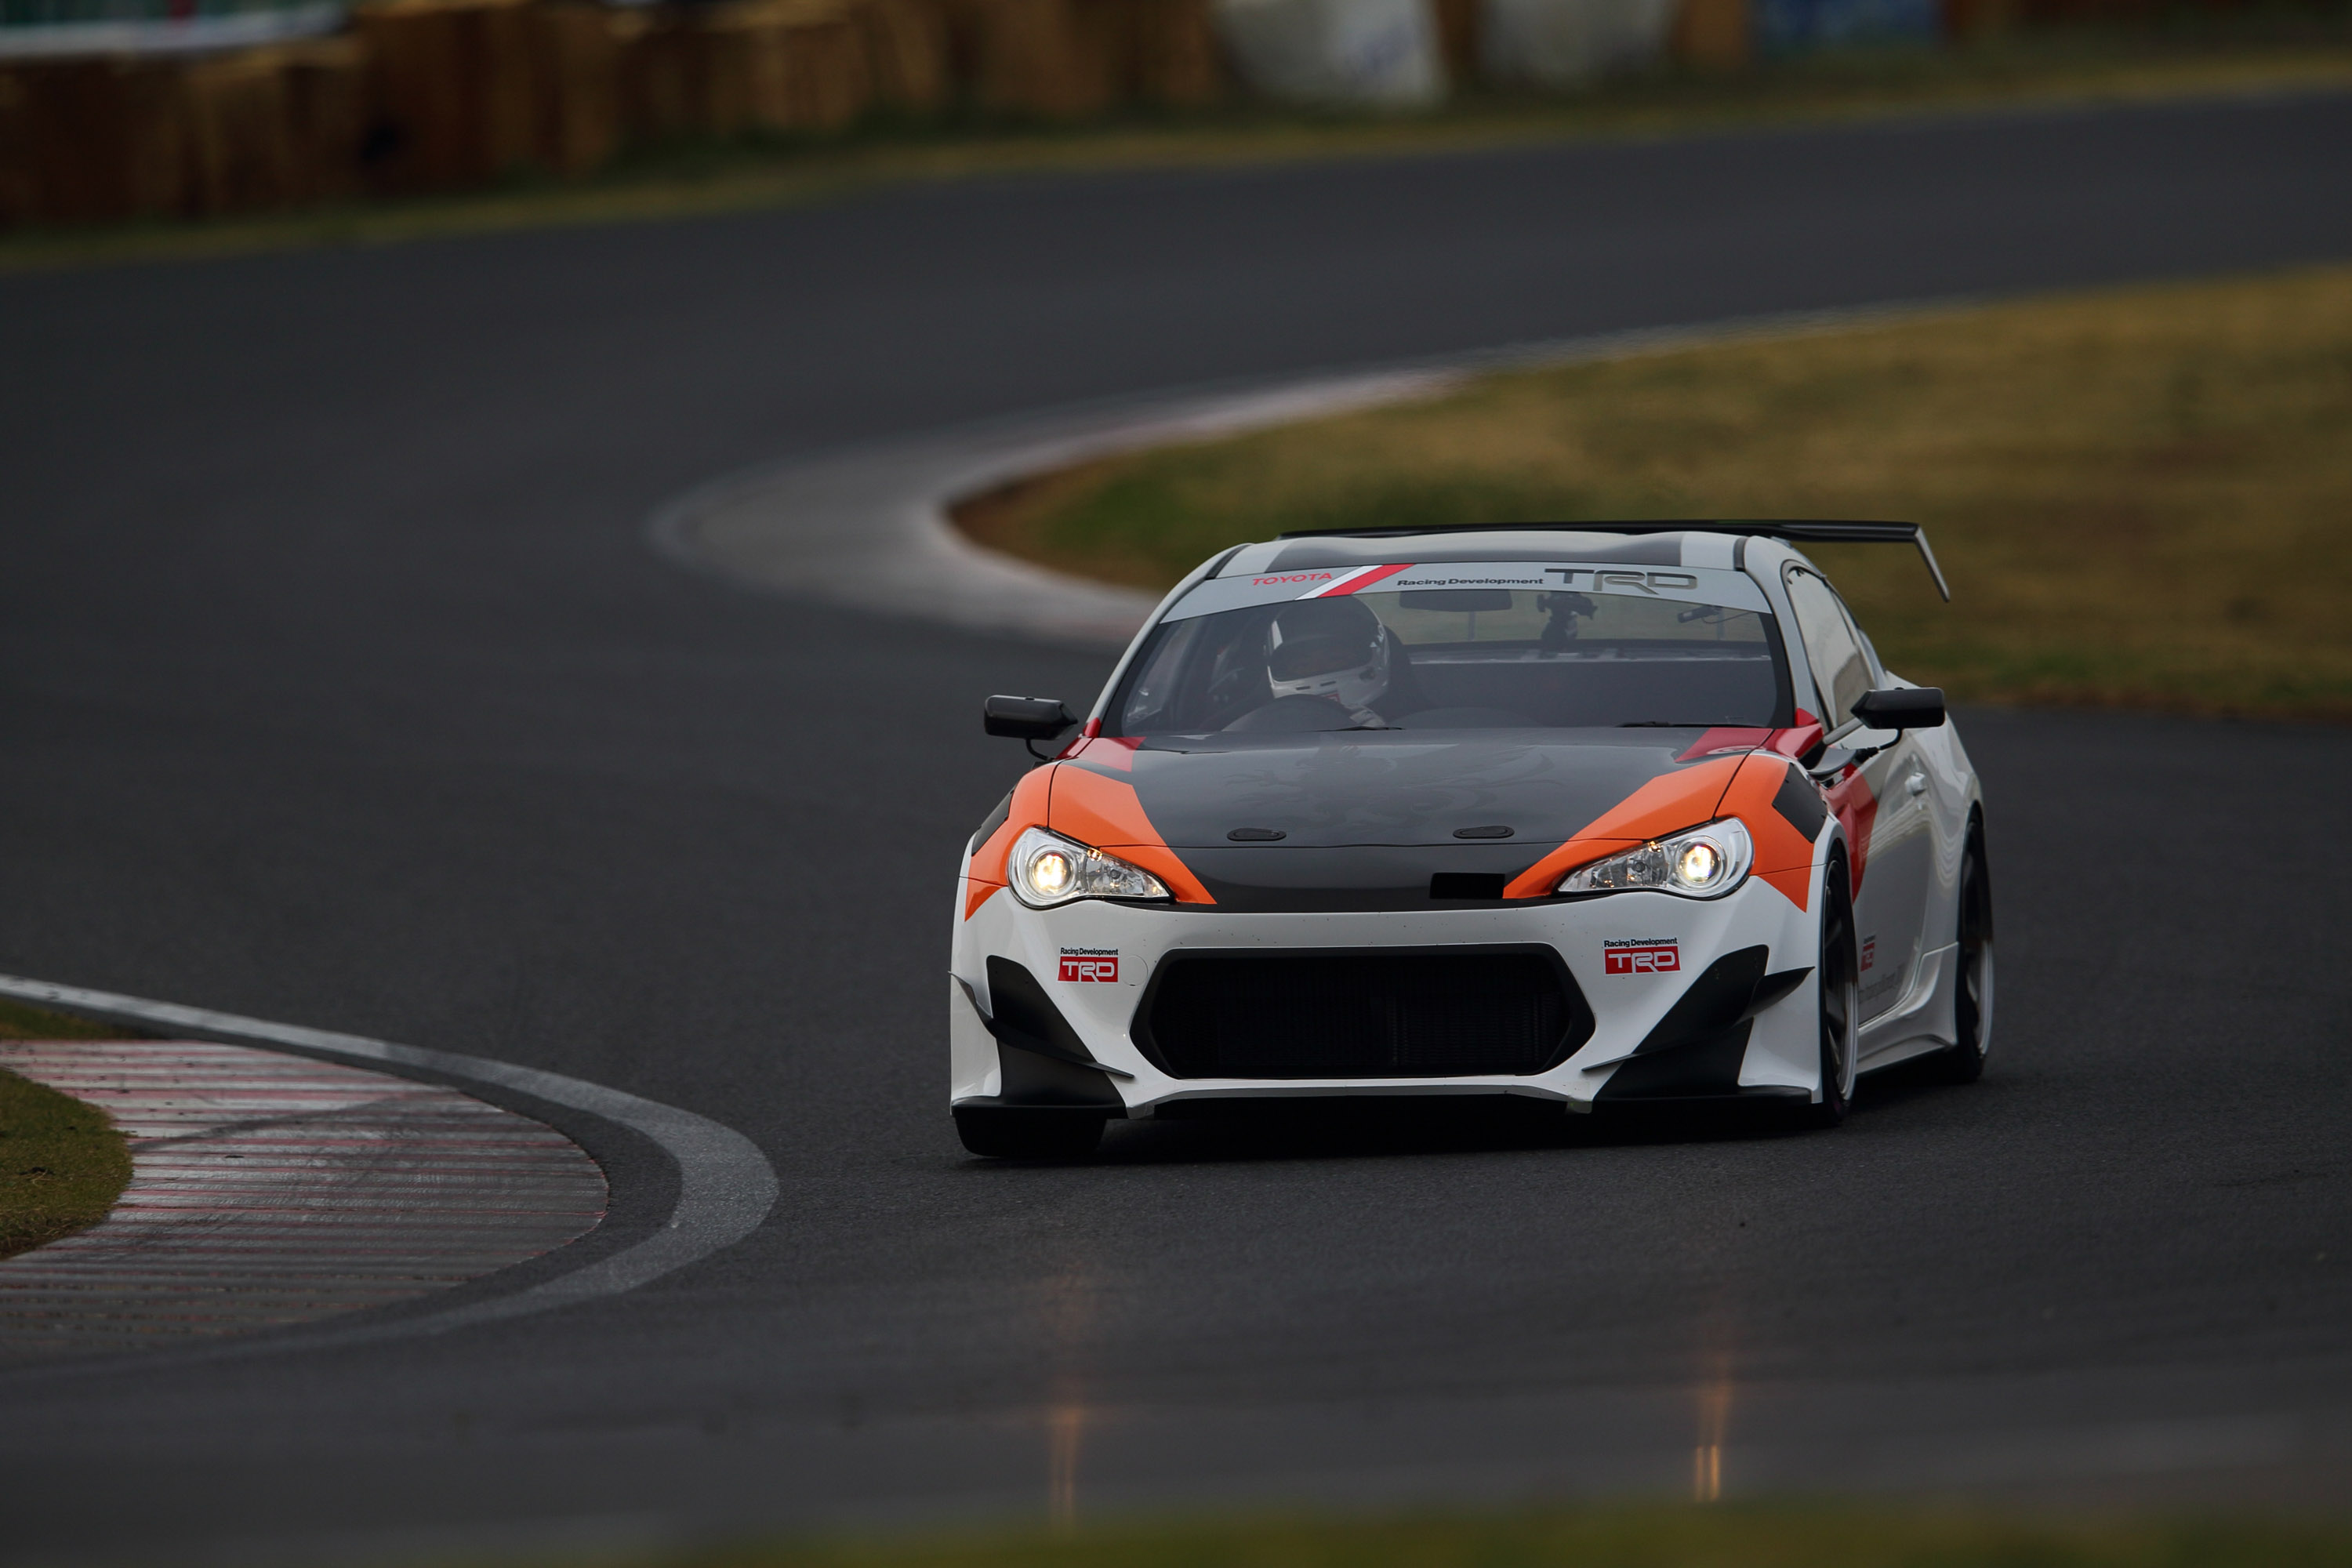 Toyota GT86 Griffon Project